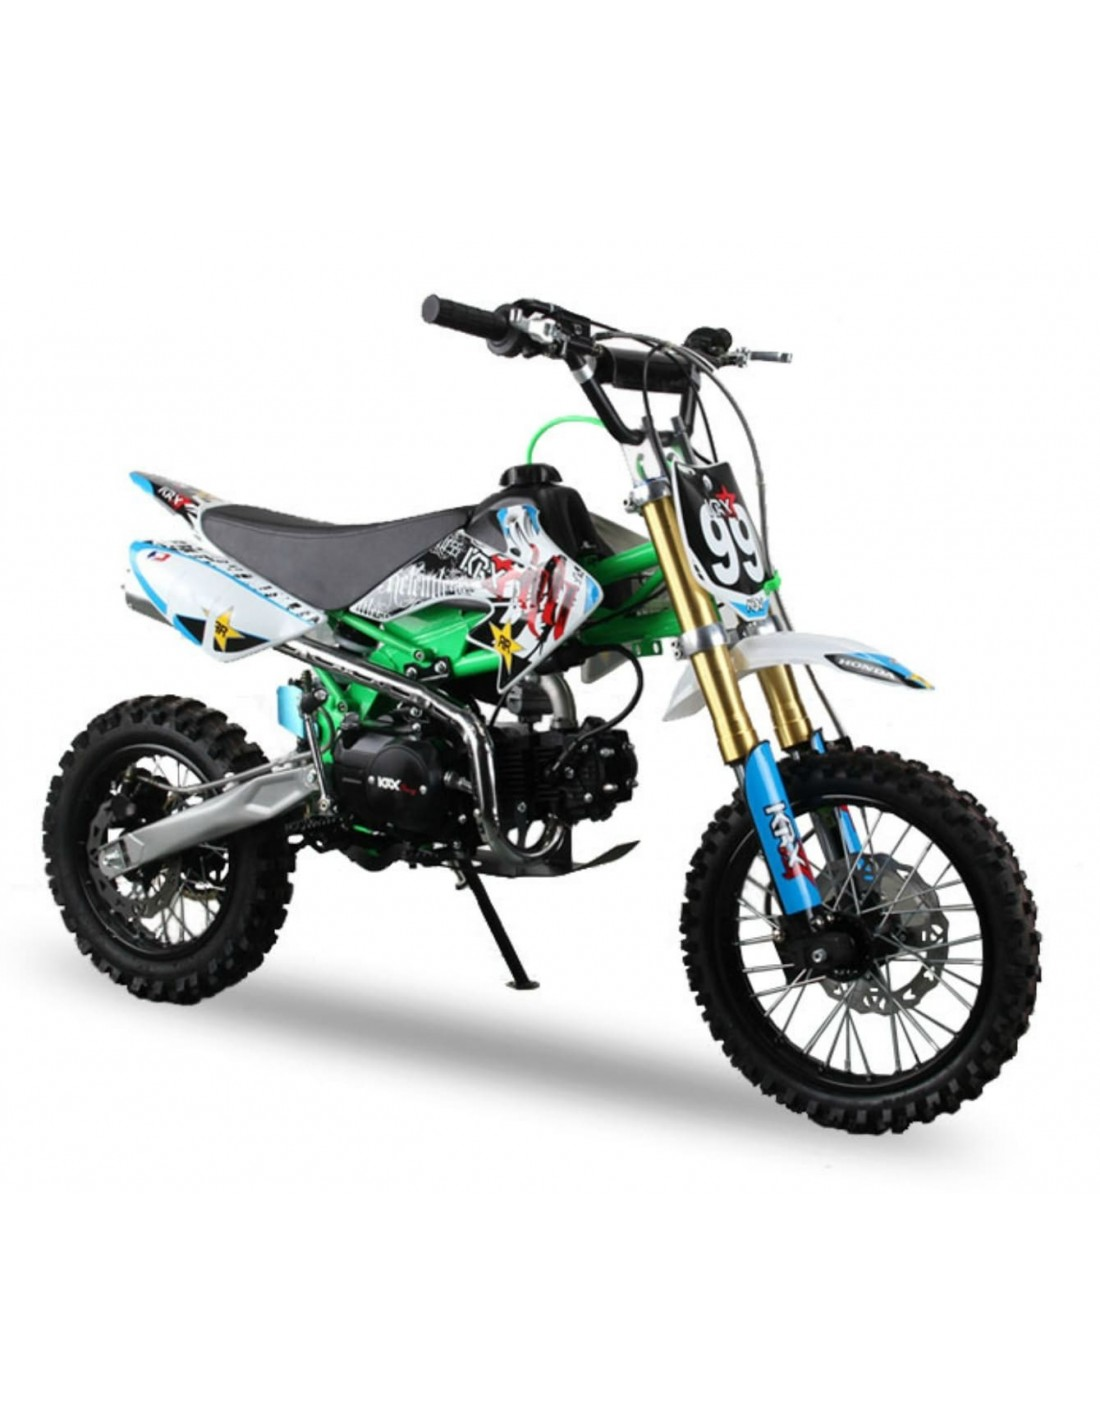 moto cross 125cc pitbike 125cc moto 4 tiempos 14 12. Black Bedroom Furniture Sets. Home Design Ideas